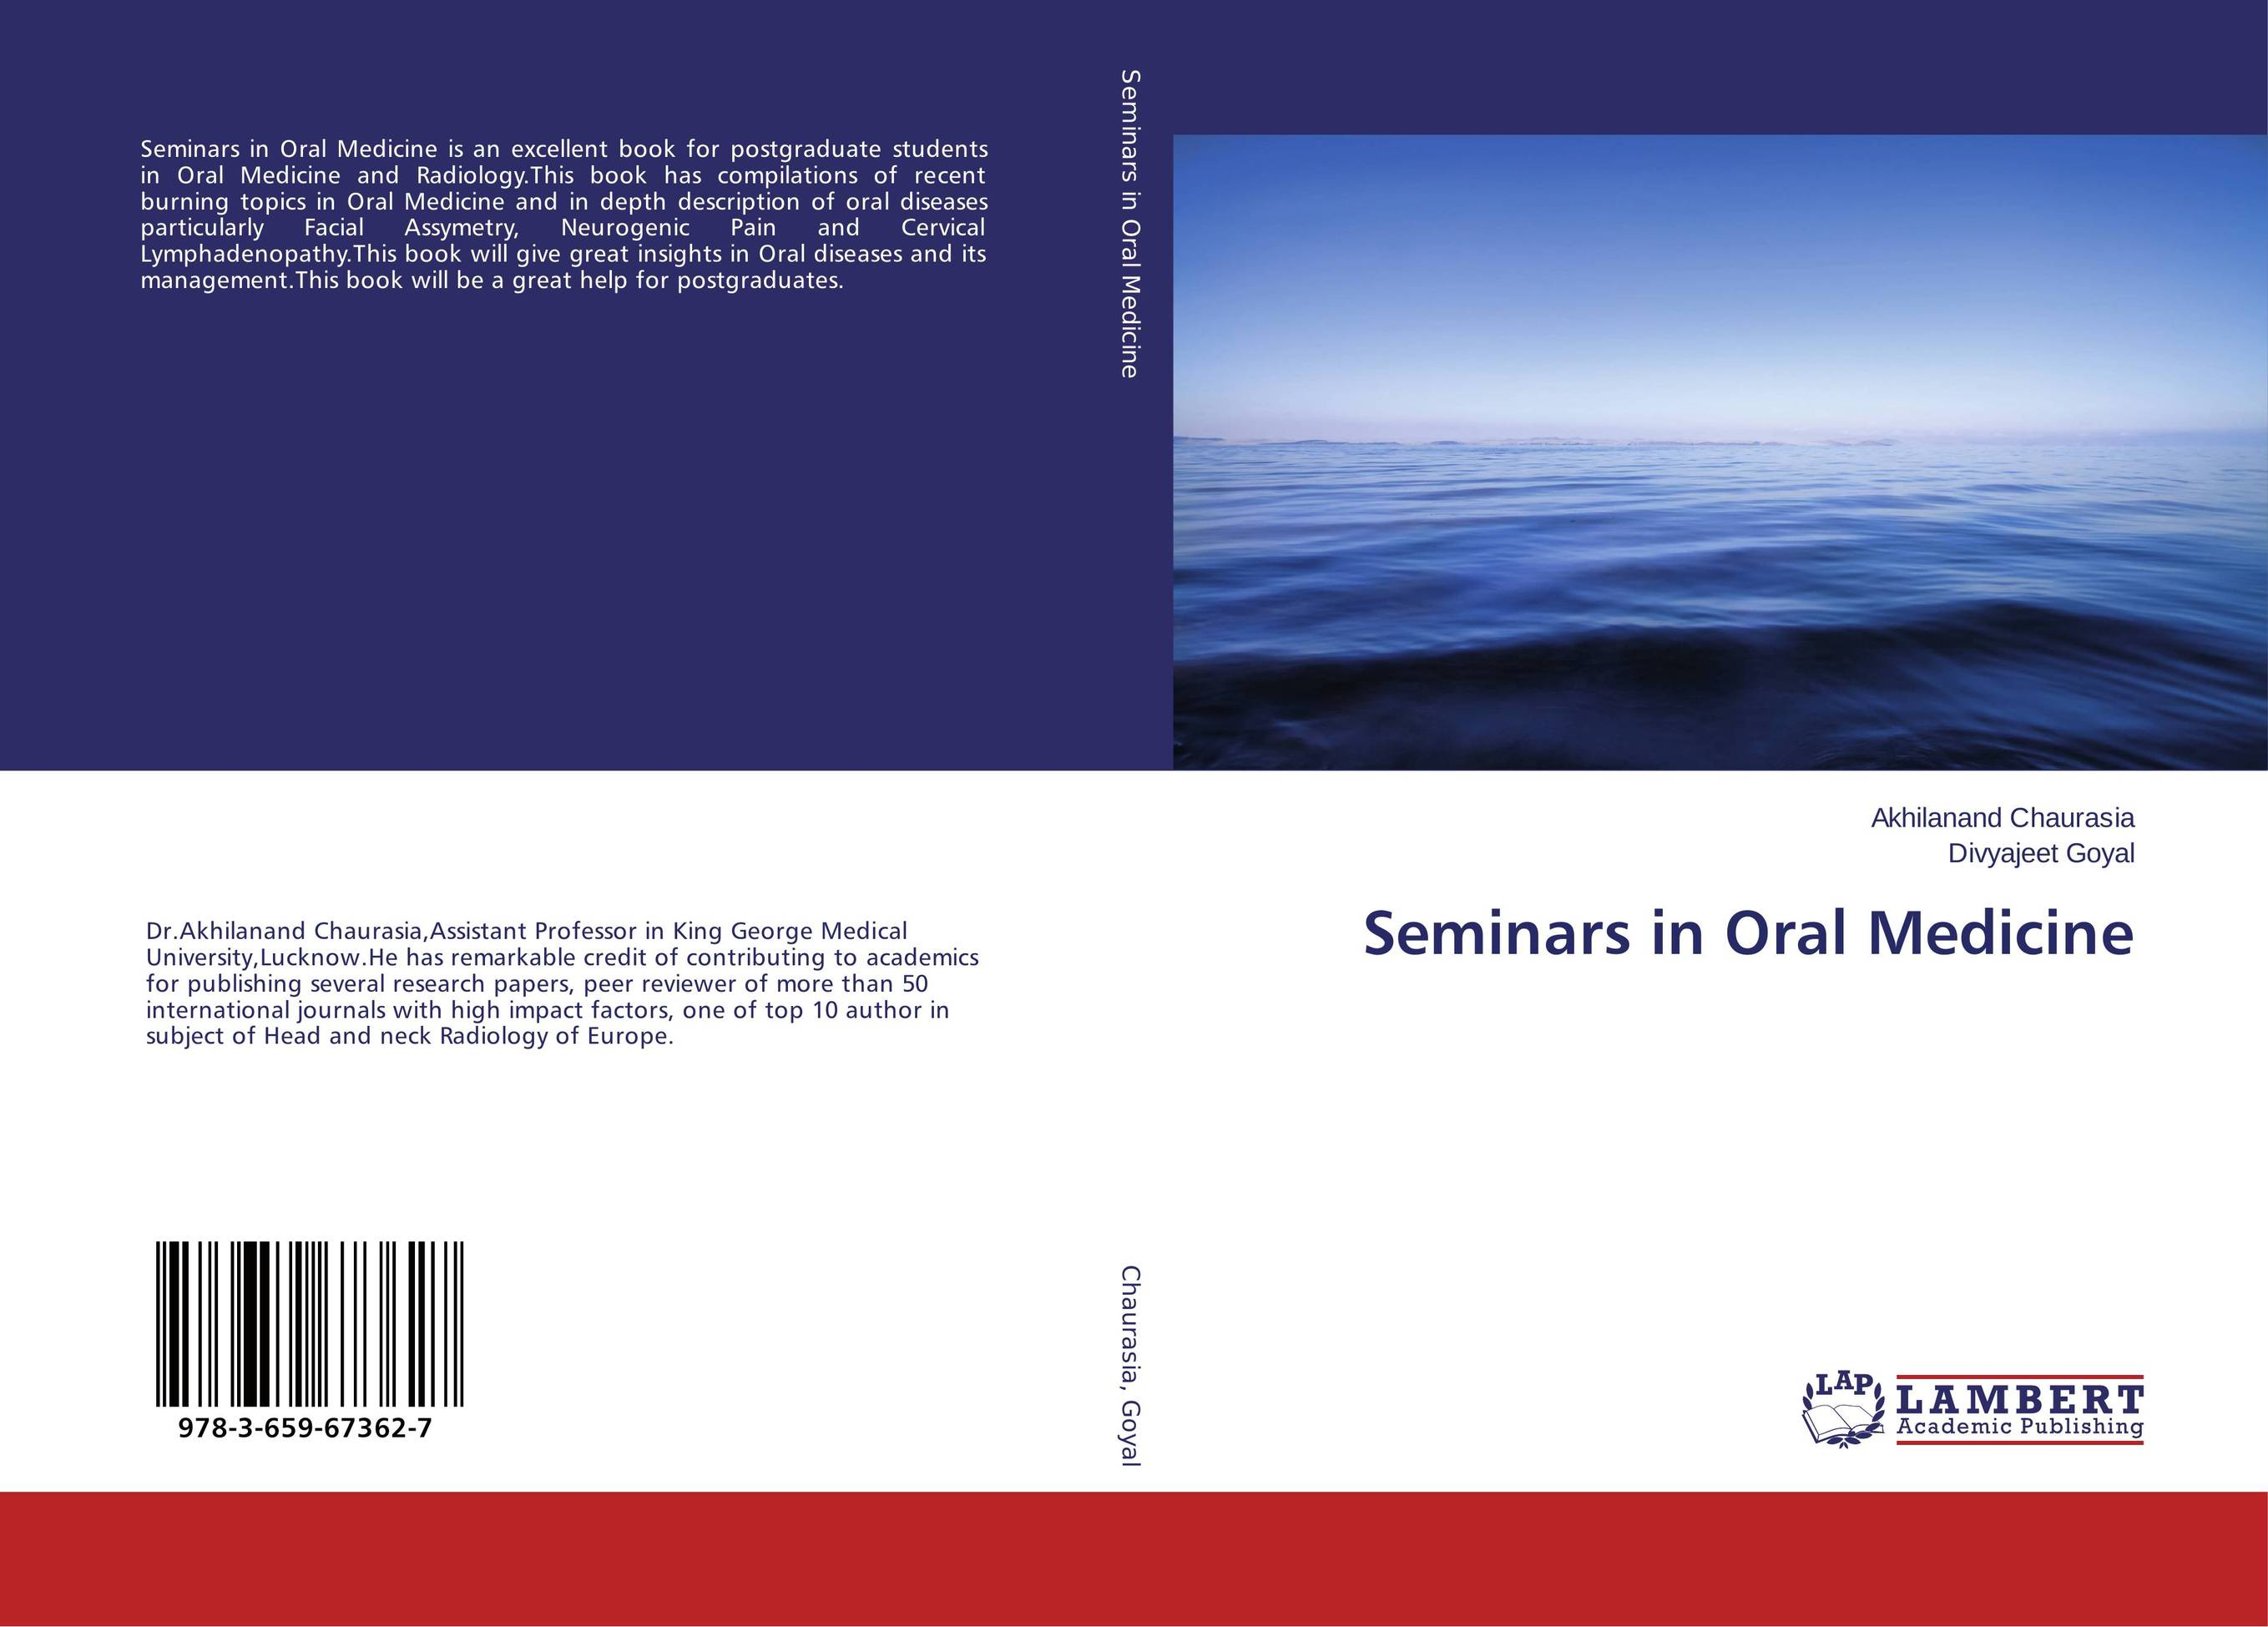 Seminars in Oral Medicine